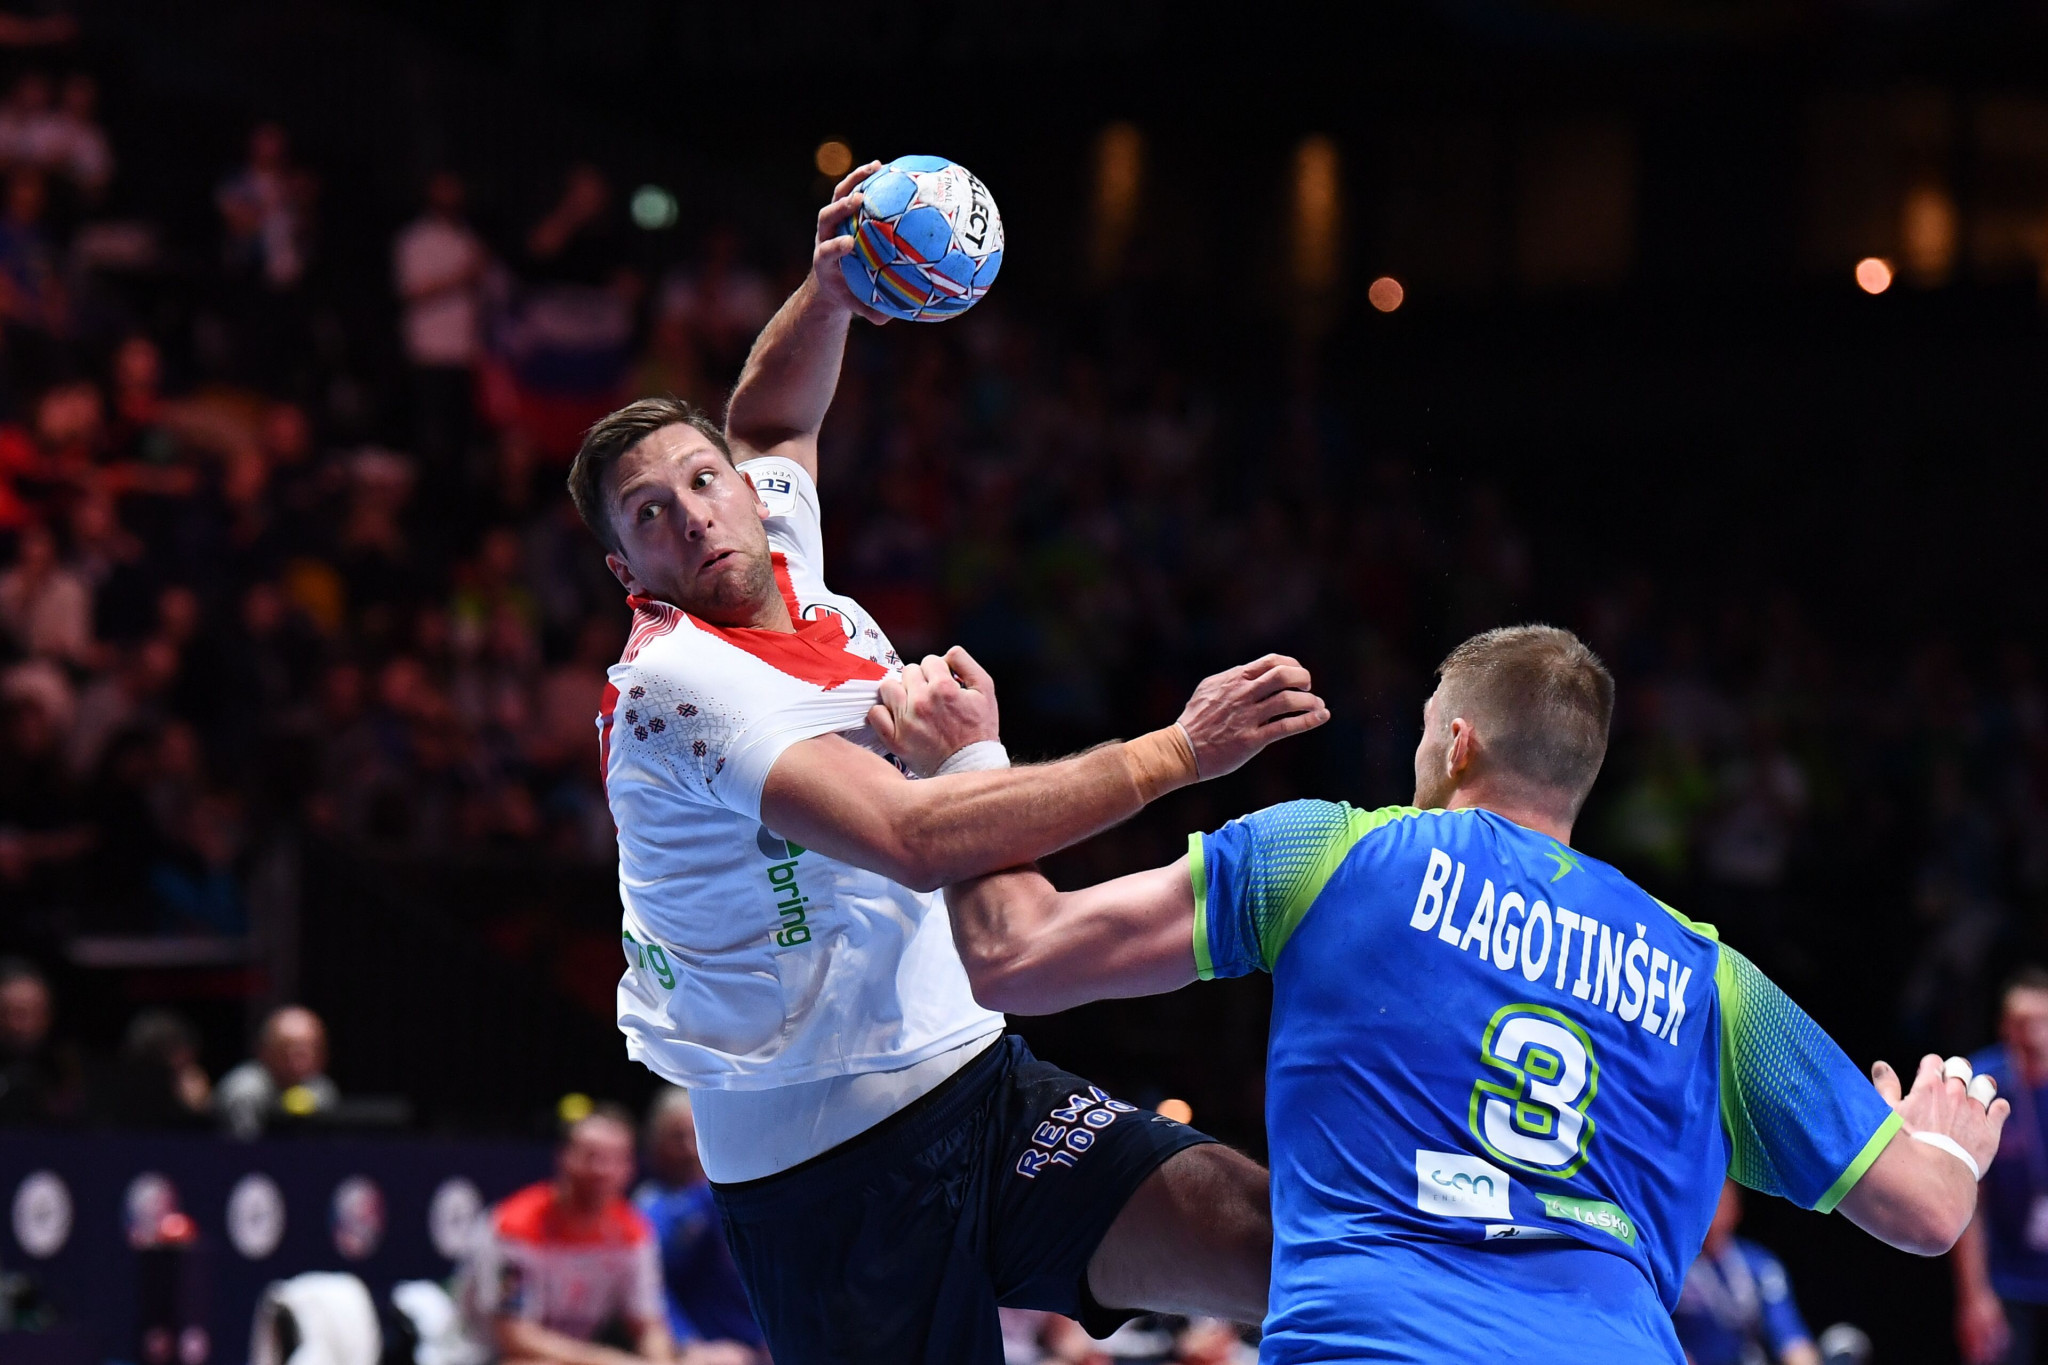 Norway's Harald Reinkind scores during the the Men's European Handball Championship bronze medal match against Slovenia in Stockholm ©Getty Images